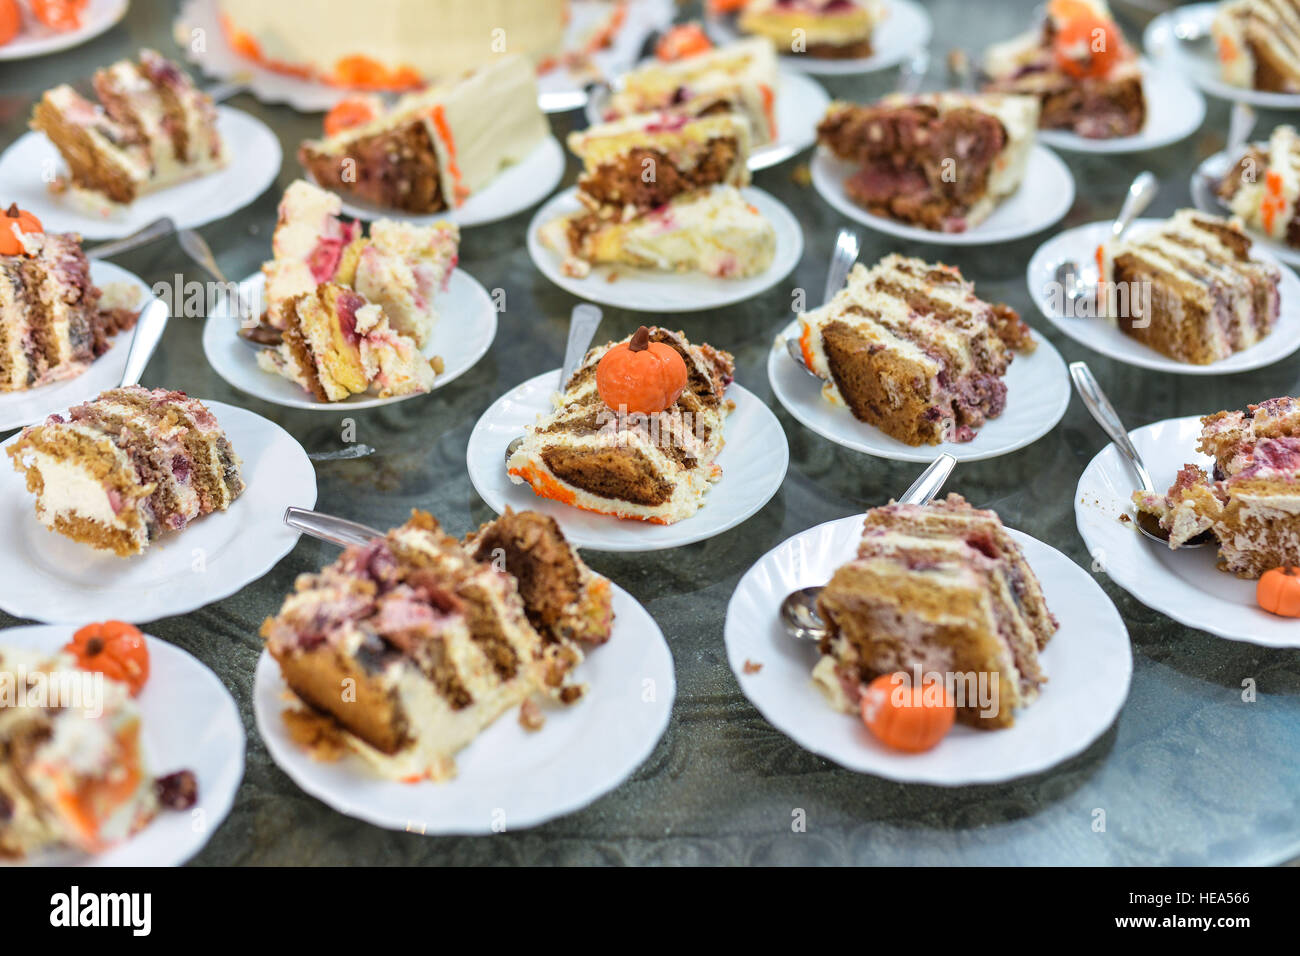 Catering service plate .appetizing sandwiches on plastic sticks rangeSandwiches & Catering service plate .appetizing sandwiches on plastic sticks ...